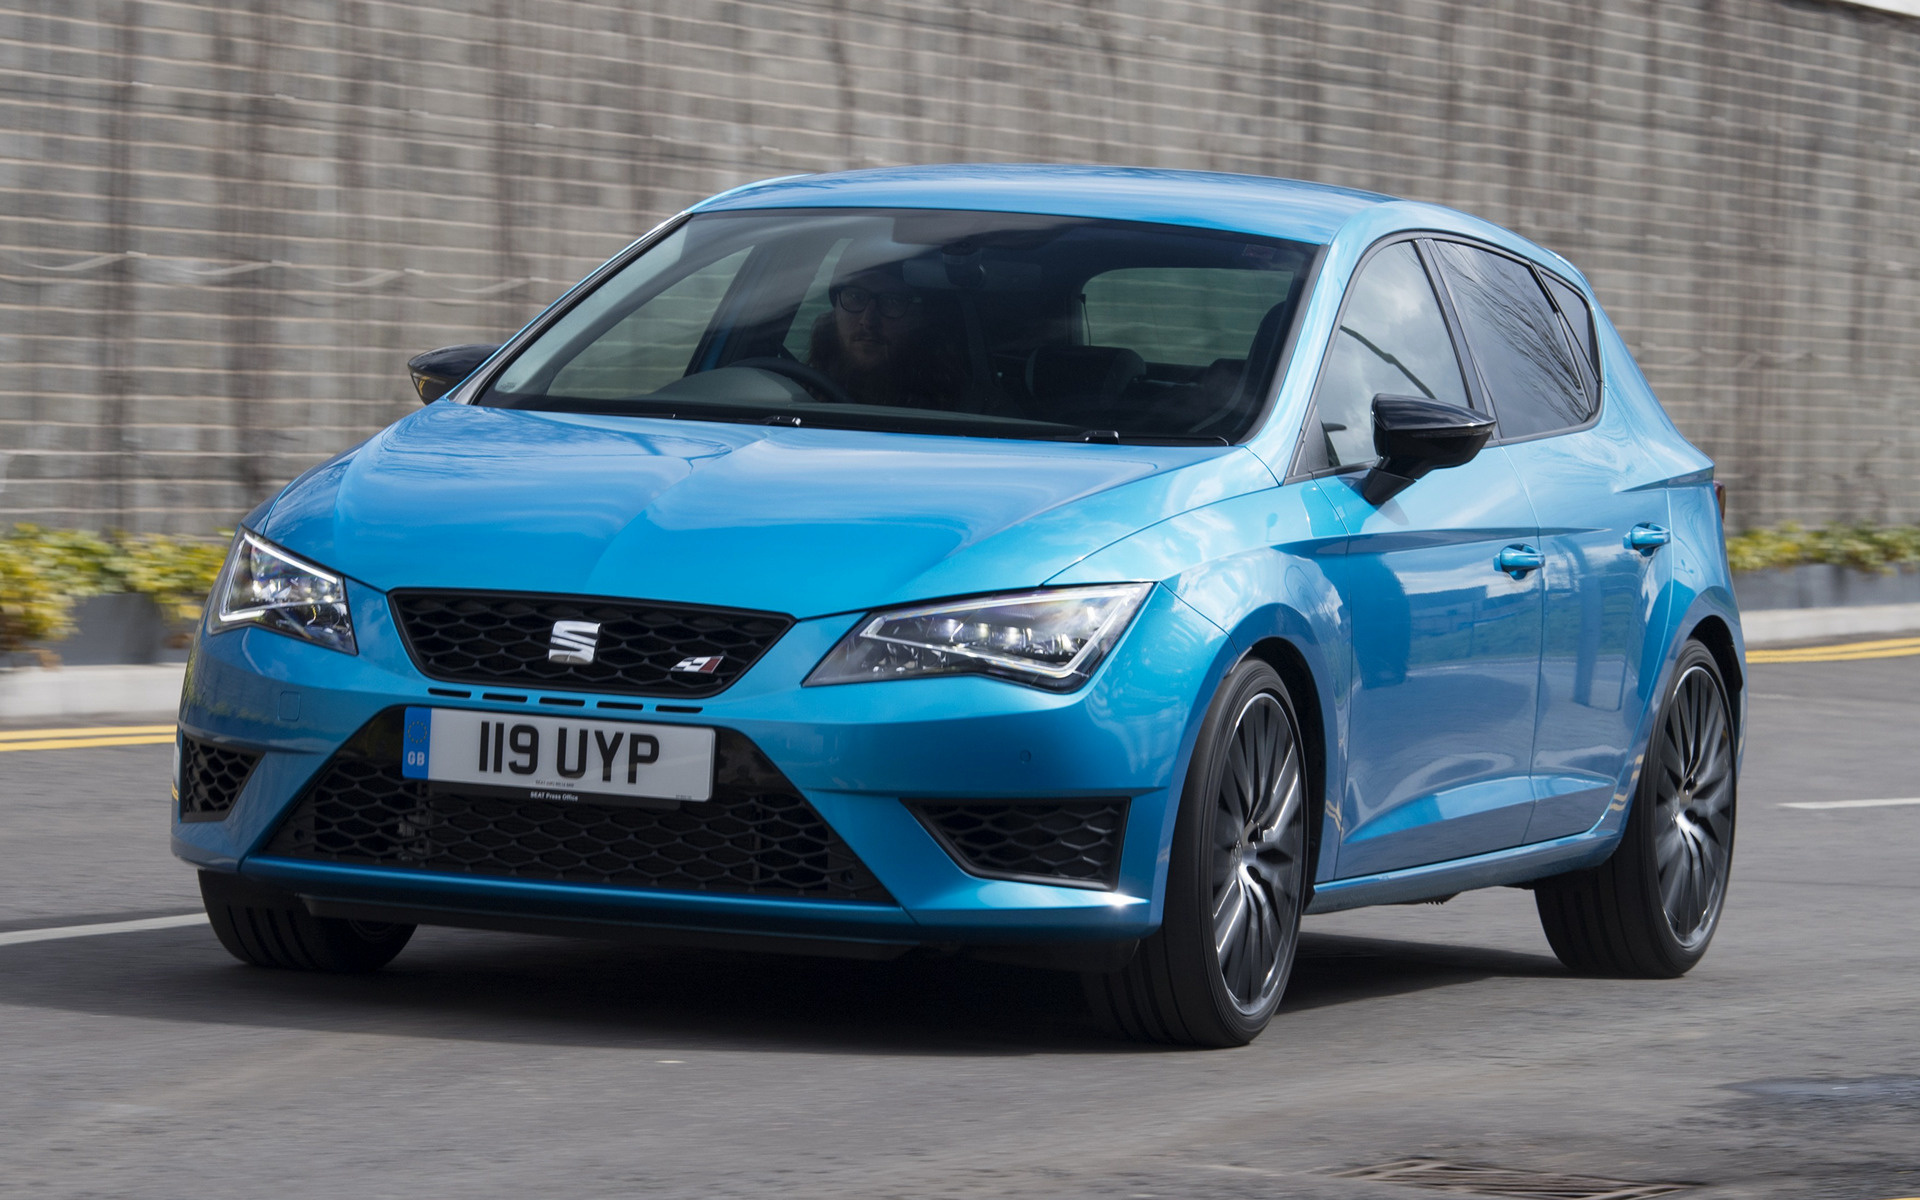 seat leon cupra 290 2016 uk wallpapers and hd images. Black Bedroom Furniture Sets. Home Design Ideas